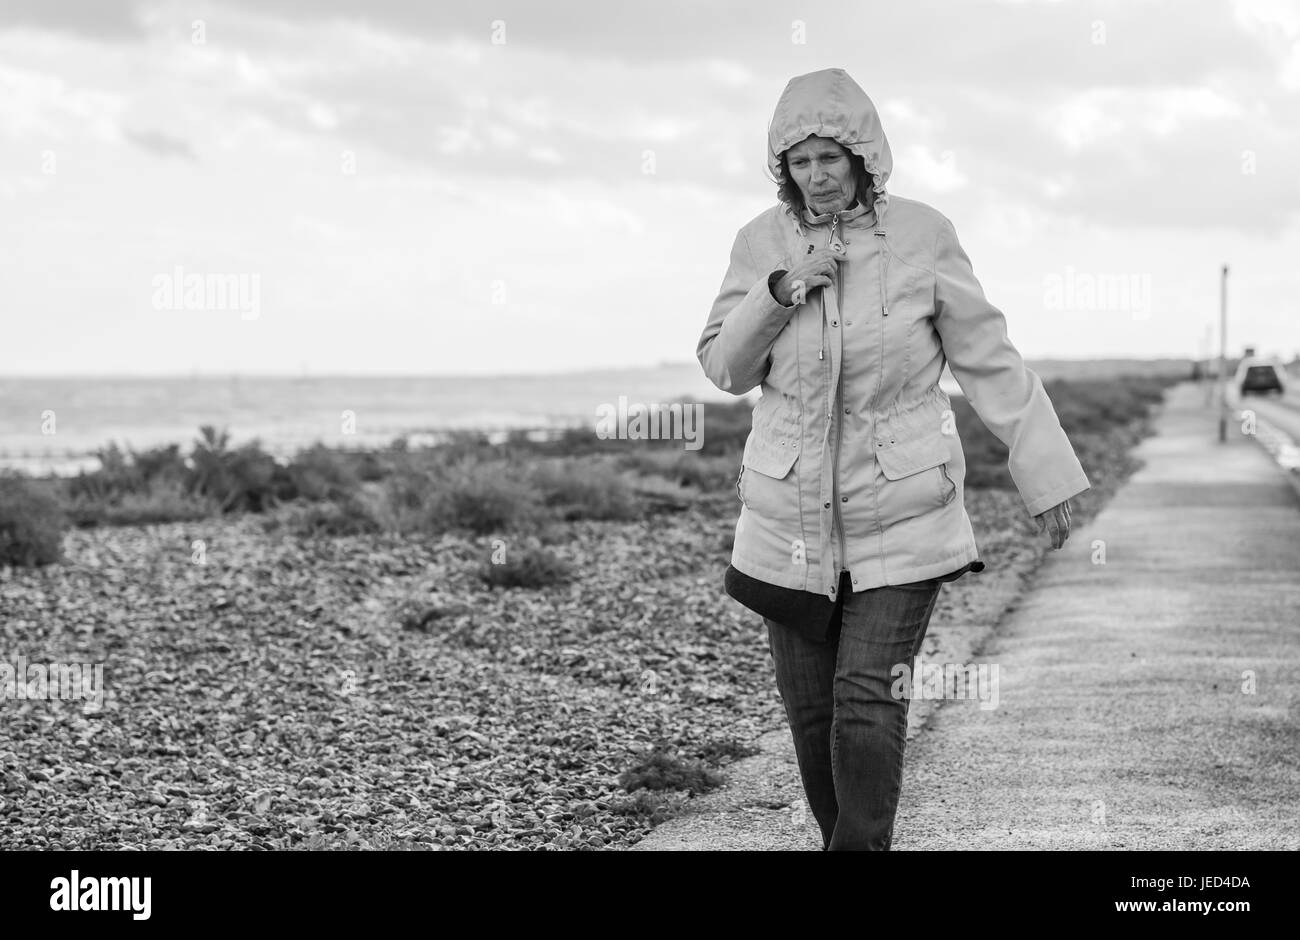 Wet and windy. Lady walking along a seafront road into the wind on a dull day. Black and white image. - Stock Image